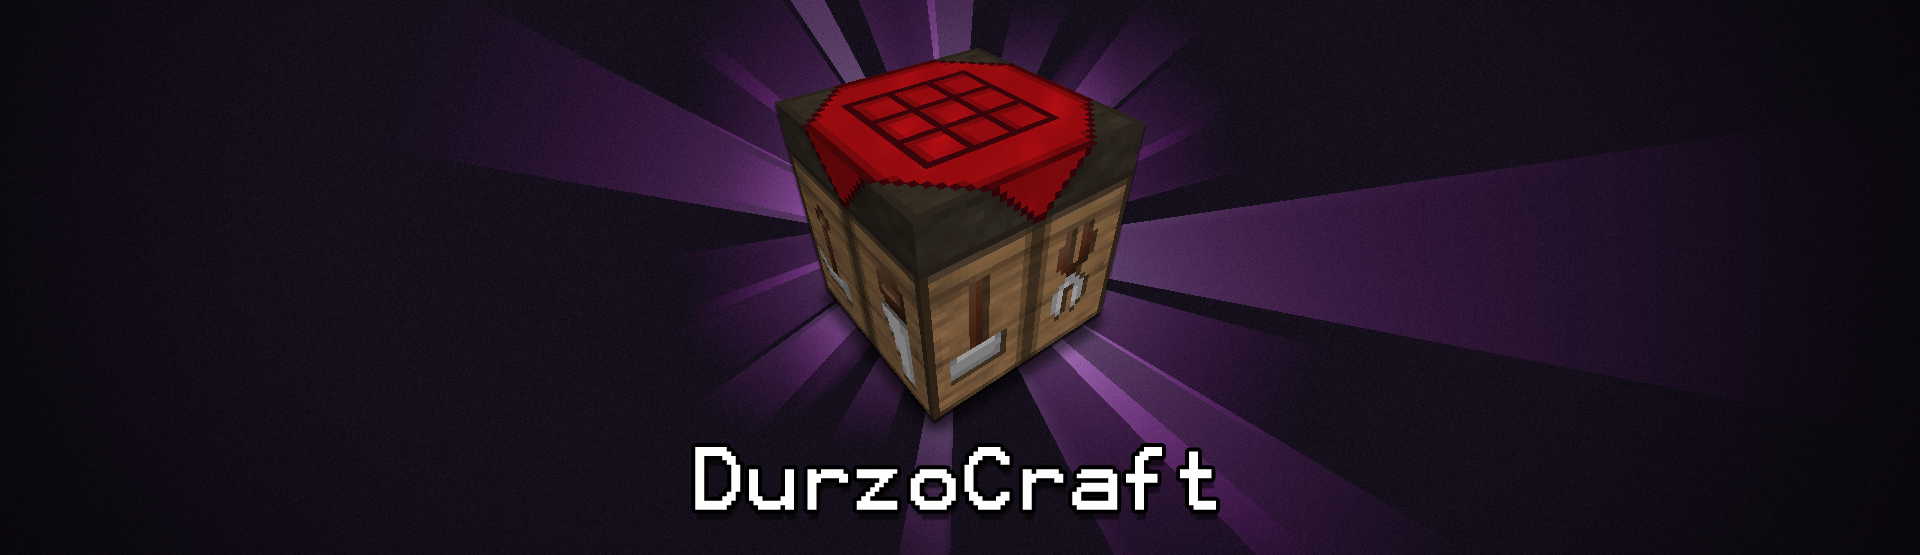 Durzocraft-resource-pack.jpg